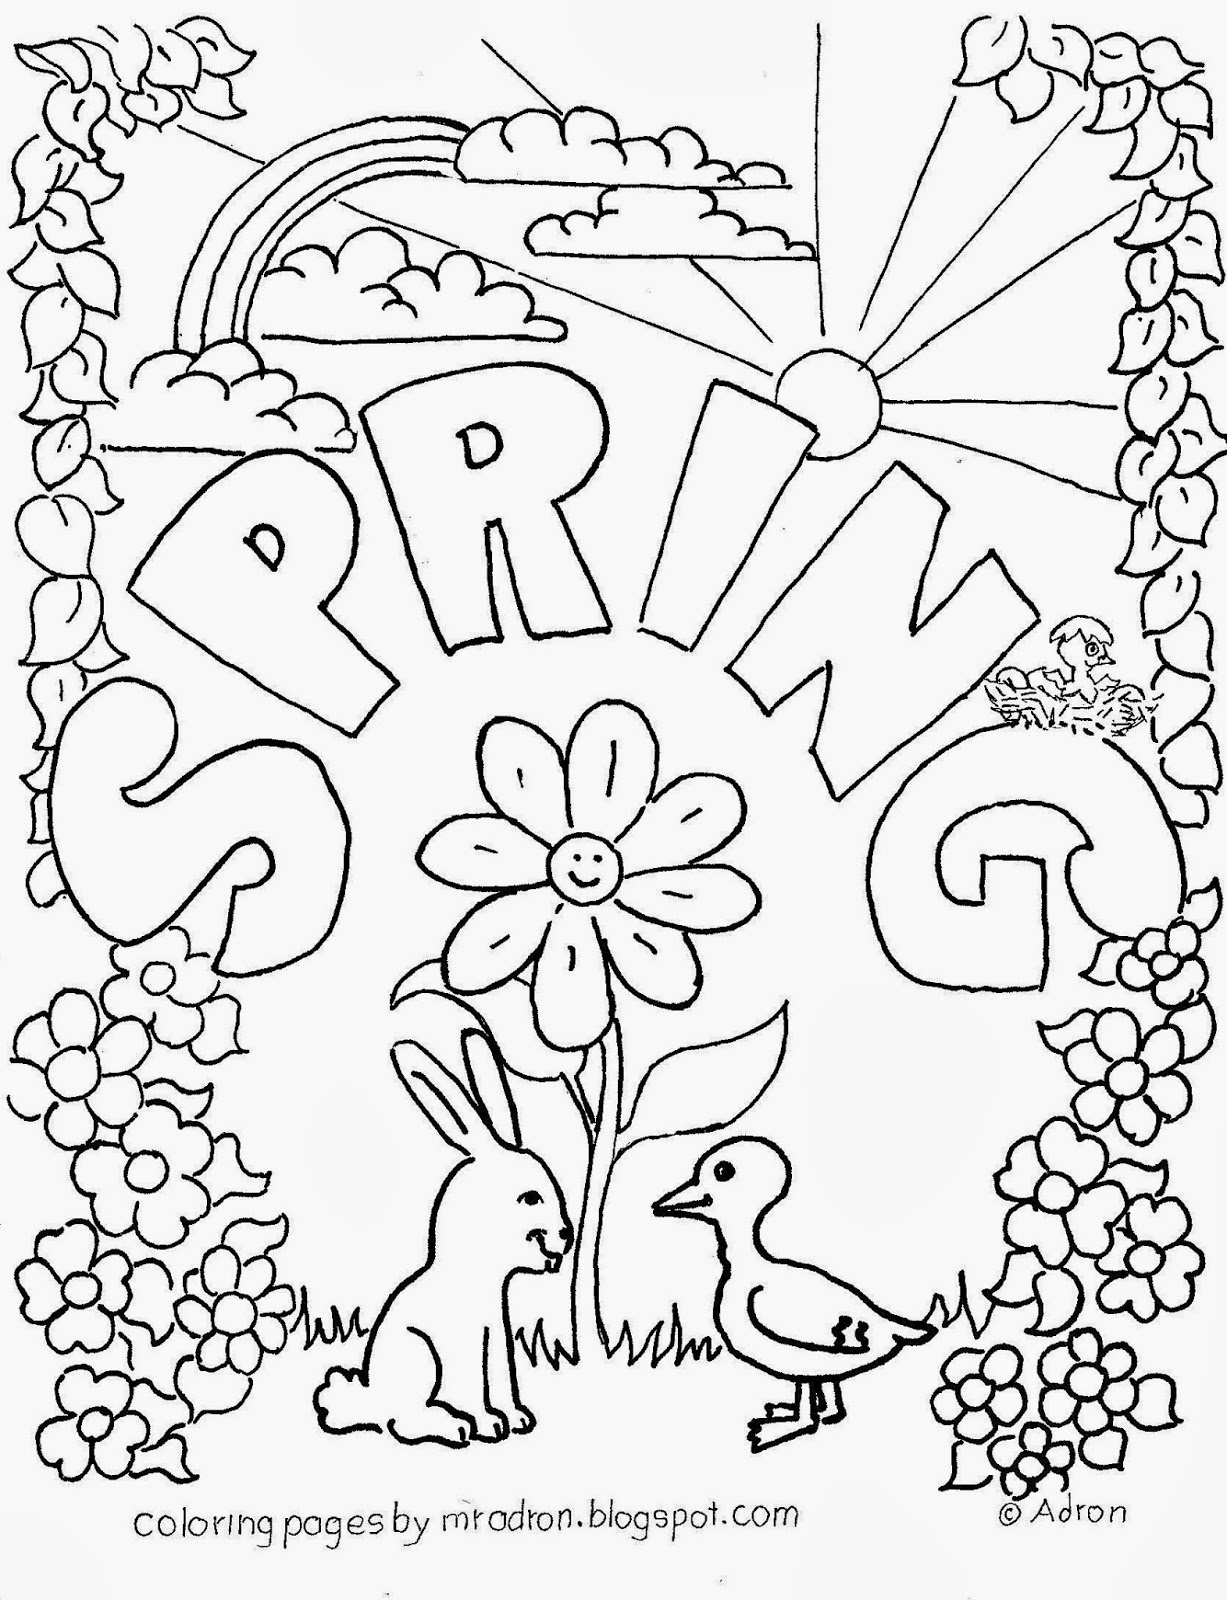 Free Coloring Pages For Preschoolers Spring : Coloring pages for kids by mr adron spring free